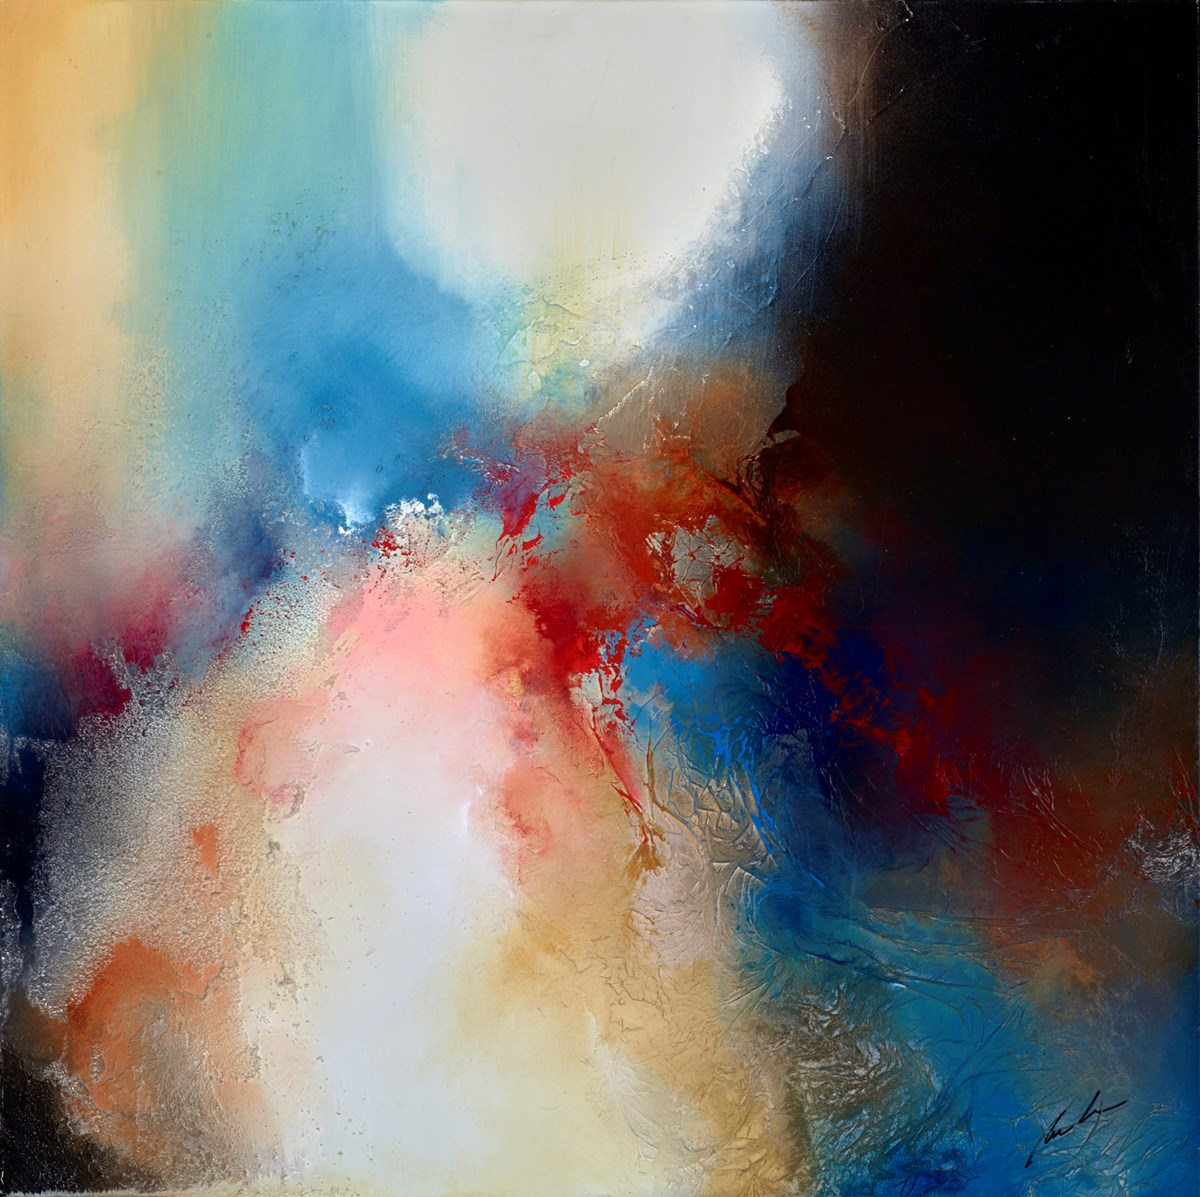 Atmos by simon kenny -  sized 30x30 inches. Available from Whitewall Galleries